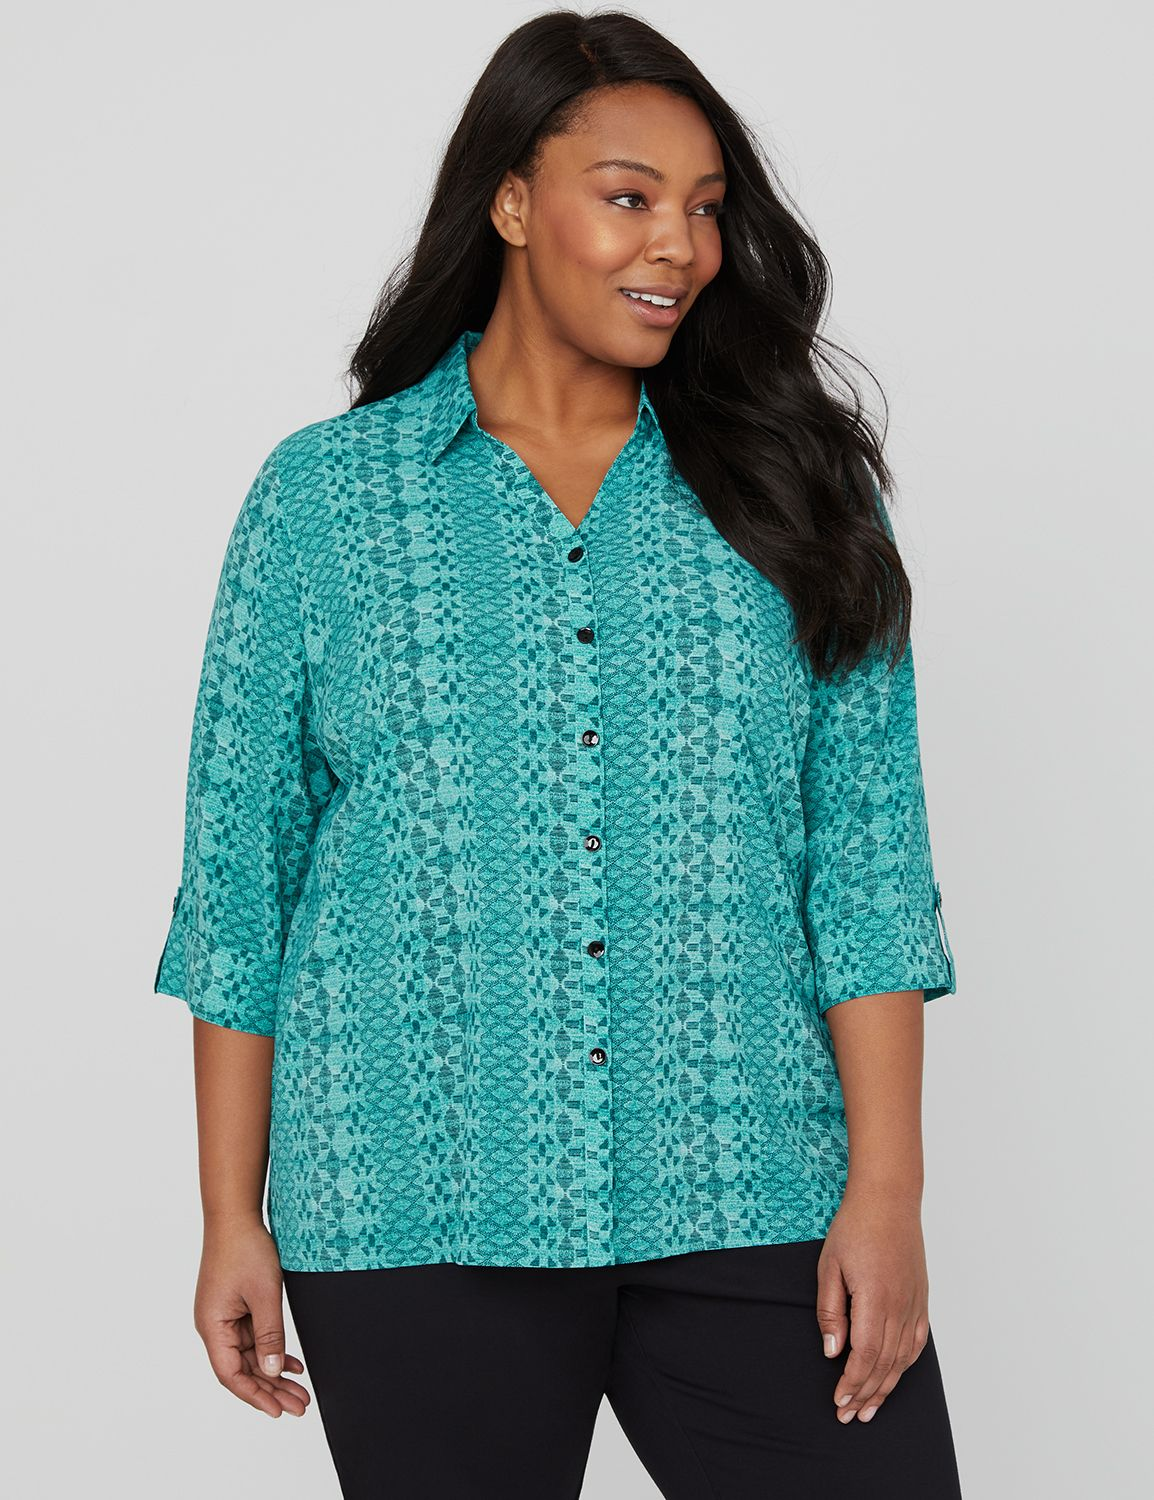 Maldives Buttonfront Shirt 3/4 Slv Collared CDC Blouse MP-300104922